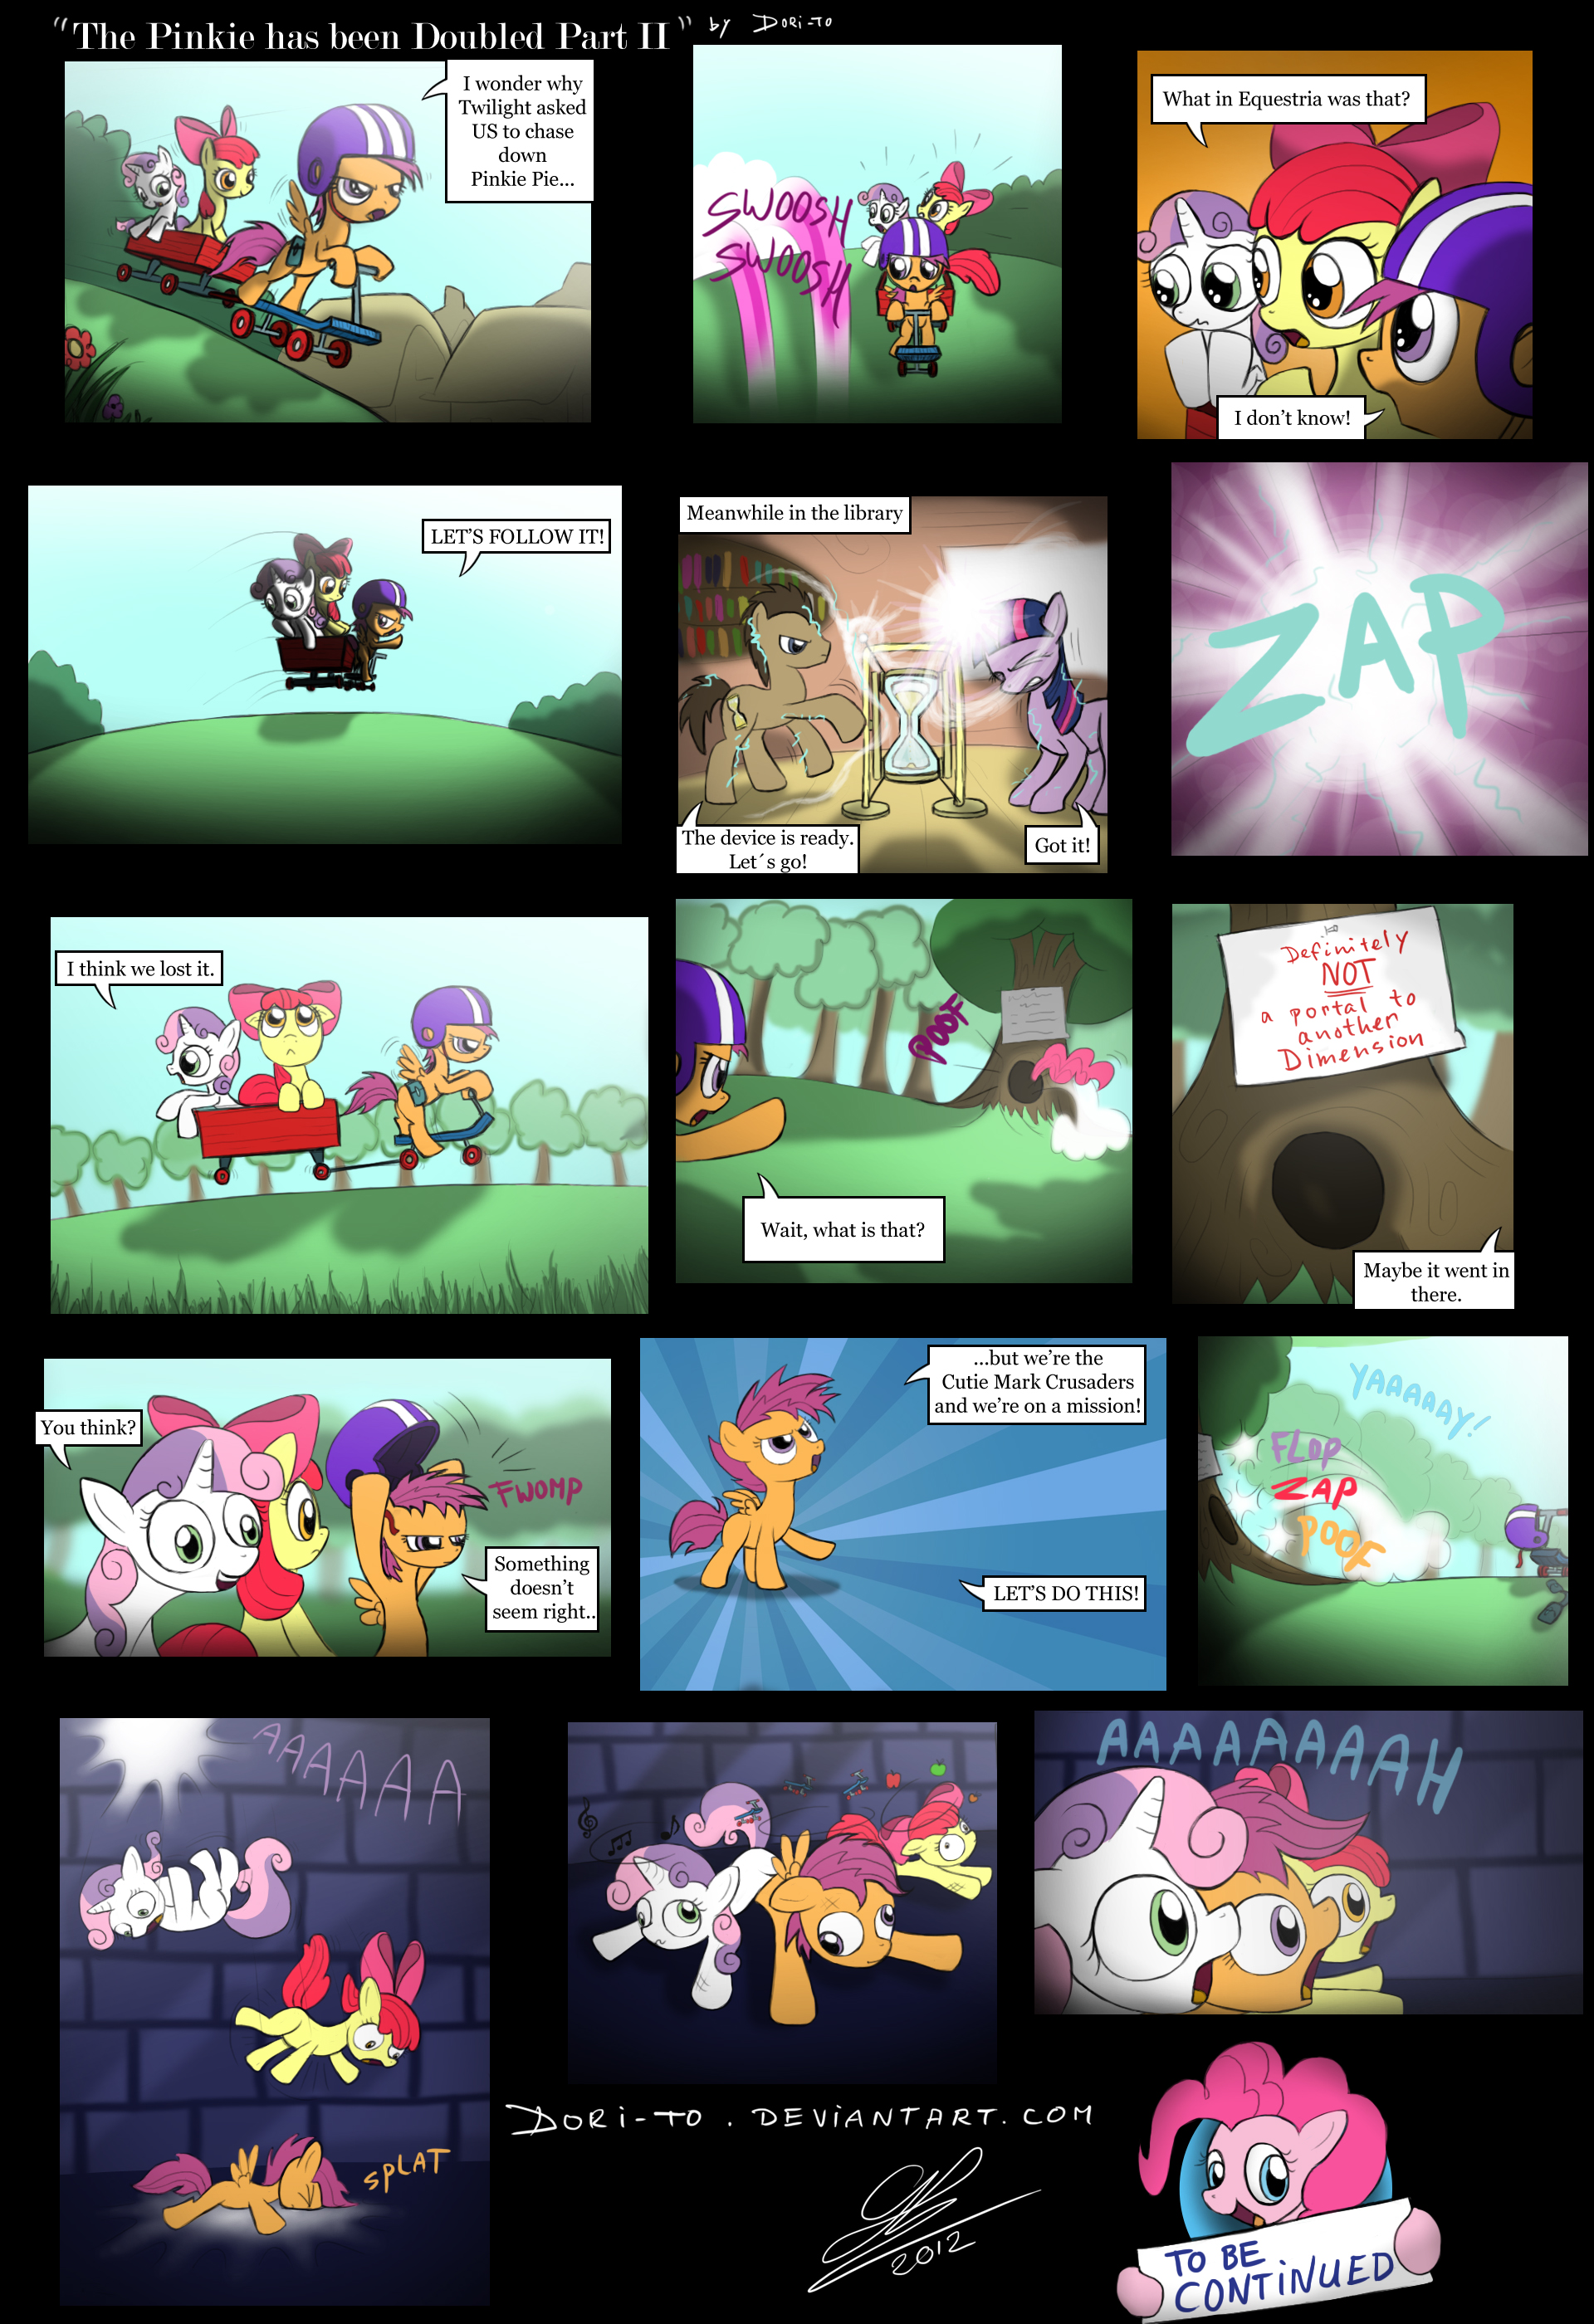 Comic - 'The Pinkie has been doubled Part II' by Dori-to